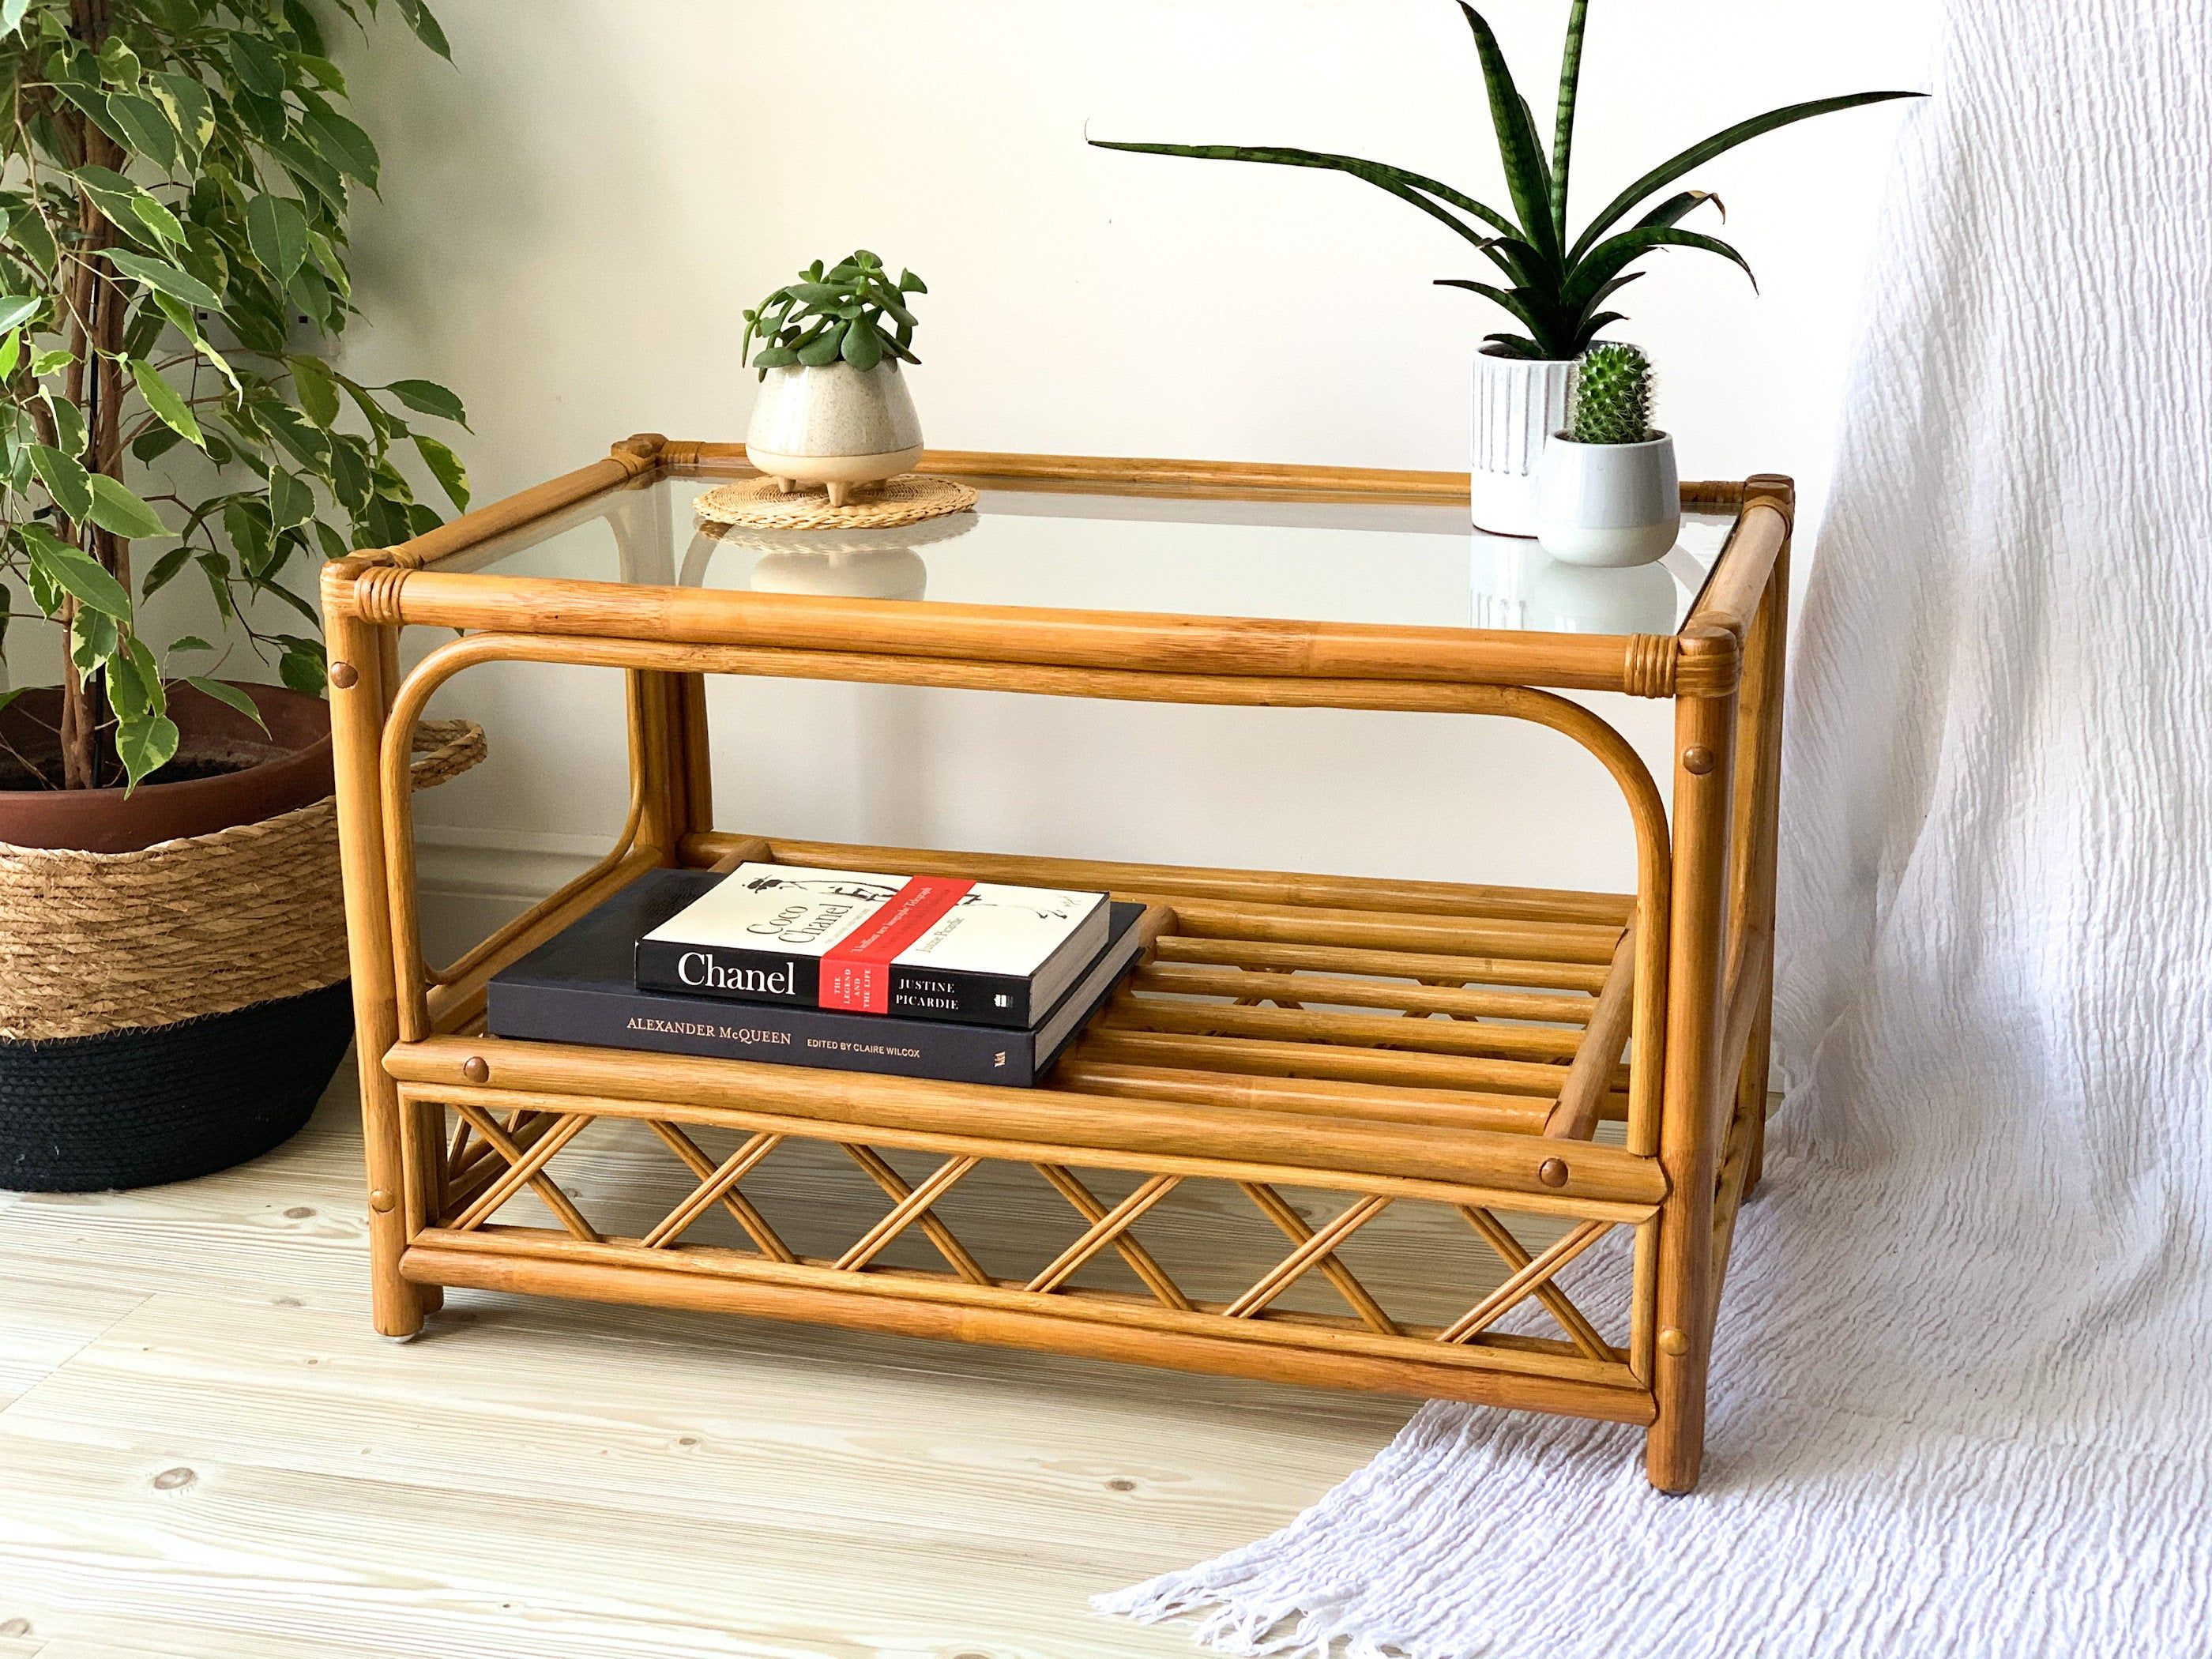 Vintage Bamboo Coffee Table Vintage Bamboo Table With Glass Top By Zebrahomeware On Etsy Bamboo Coffee Table Bamboo Table Coffee Table Vintage [ 2100 x 2800 Pixel ]